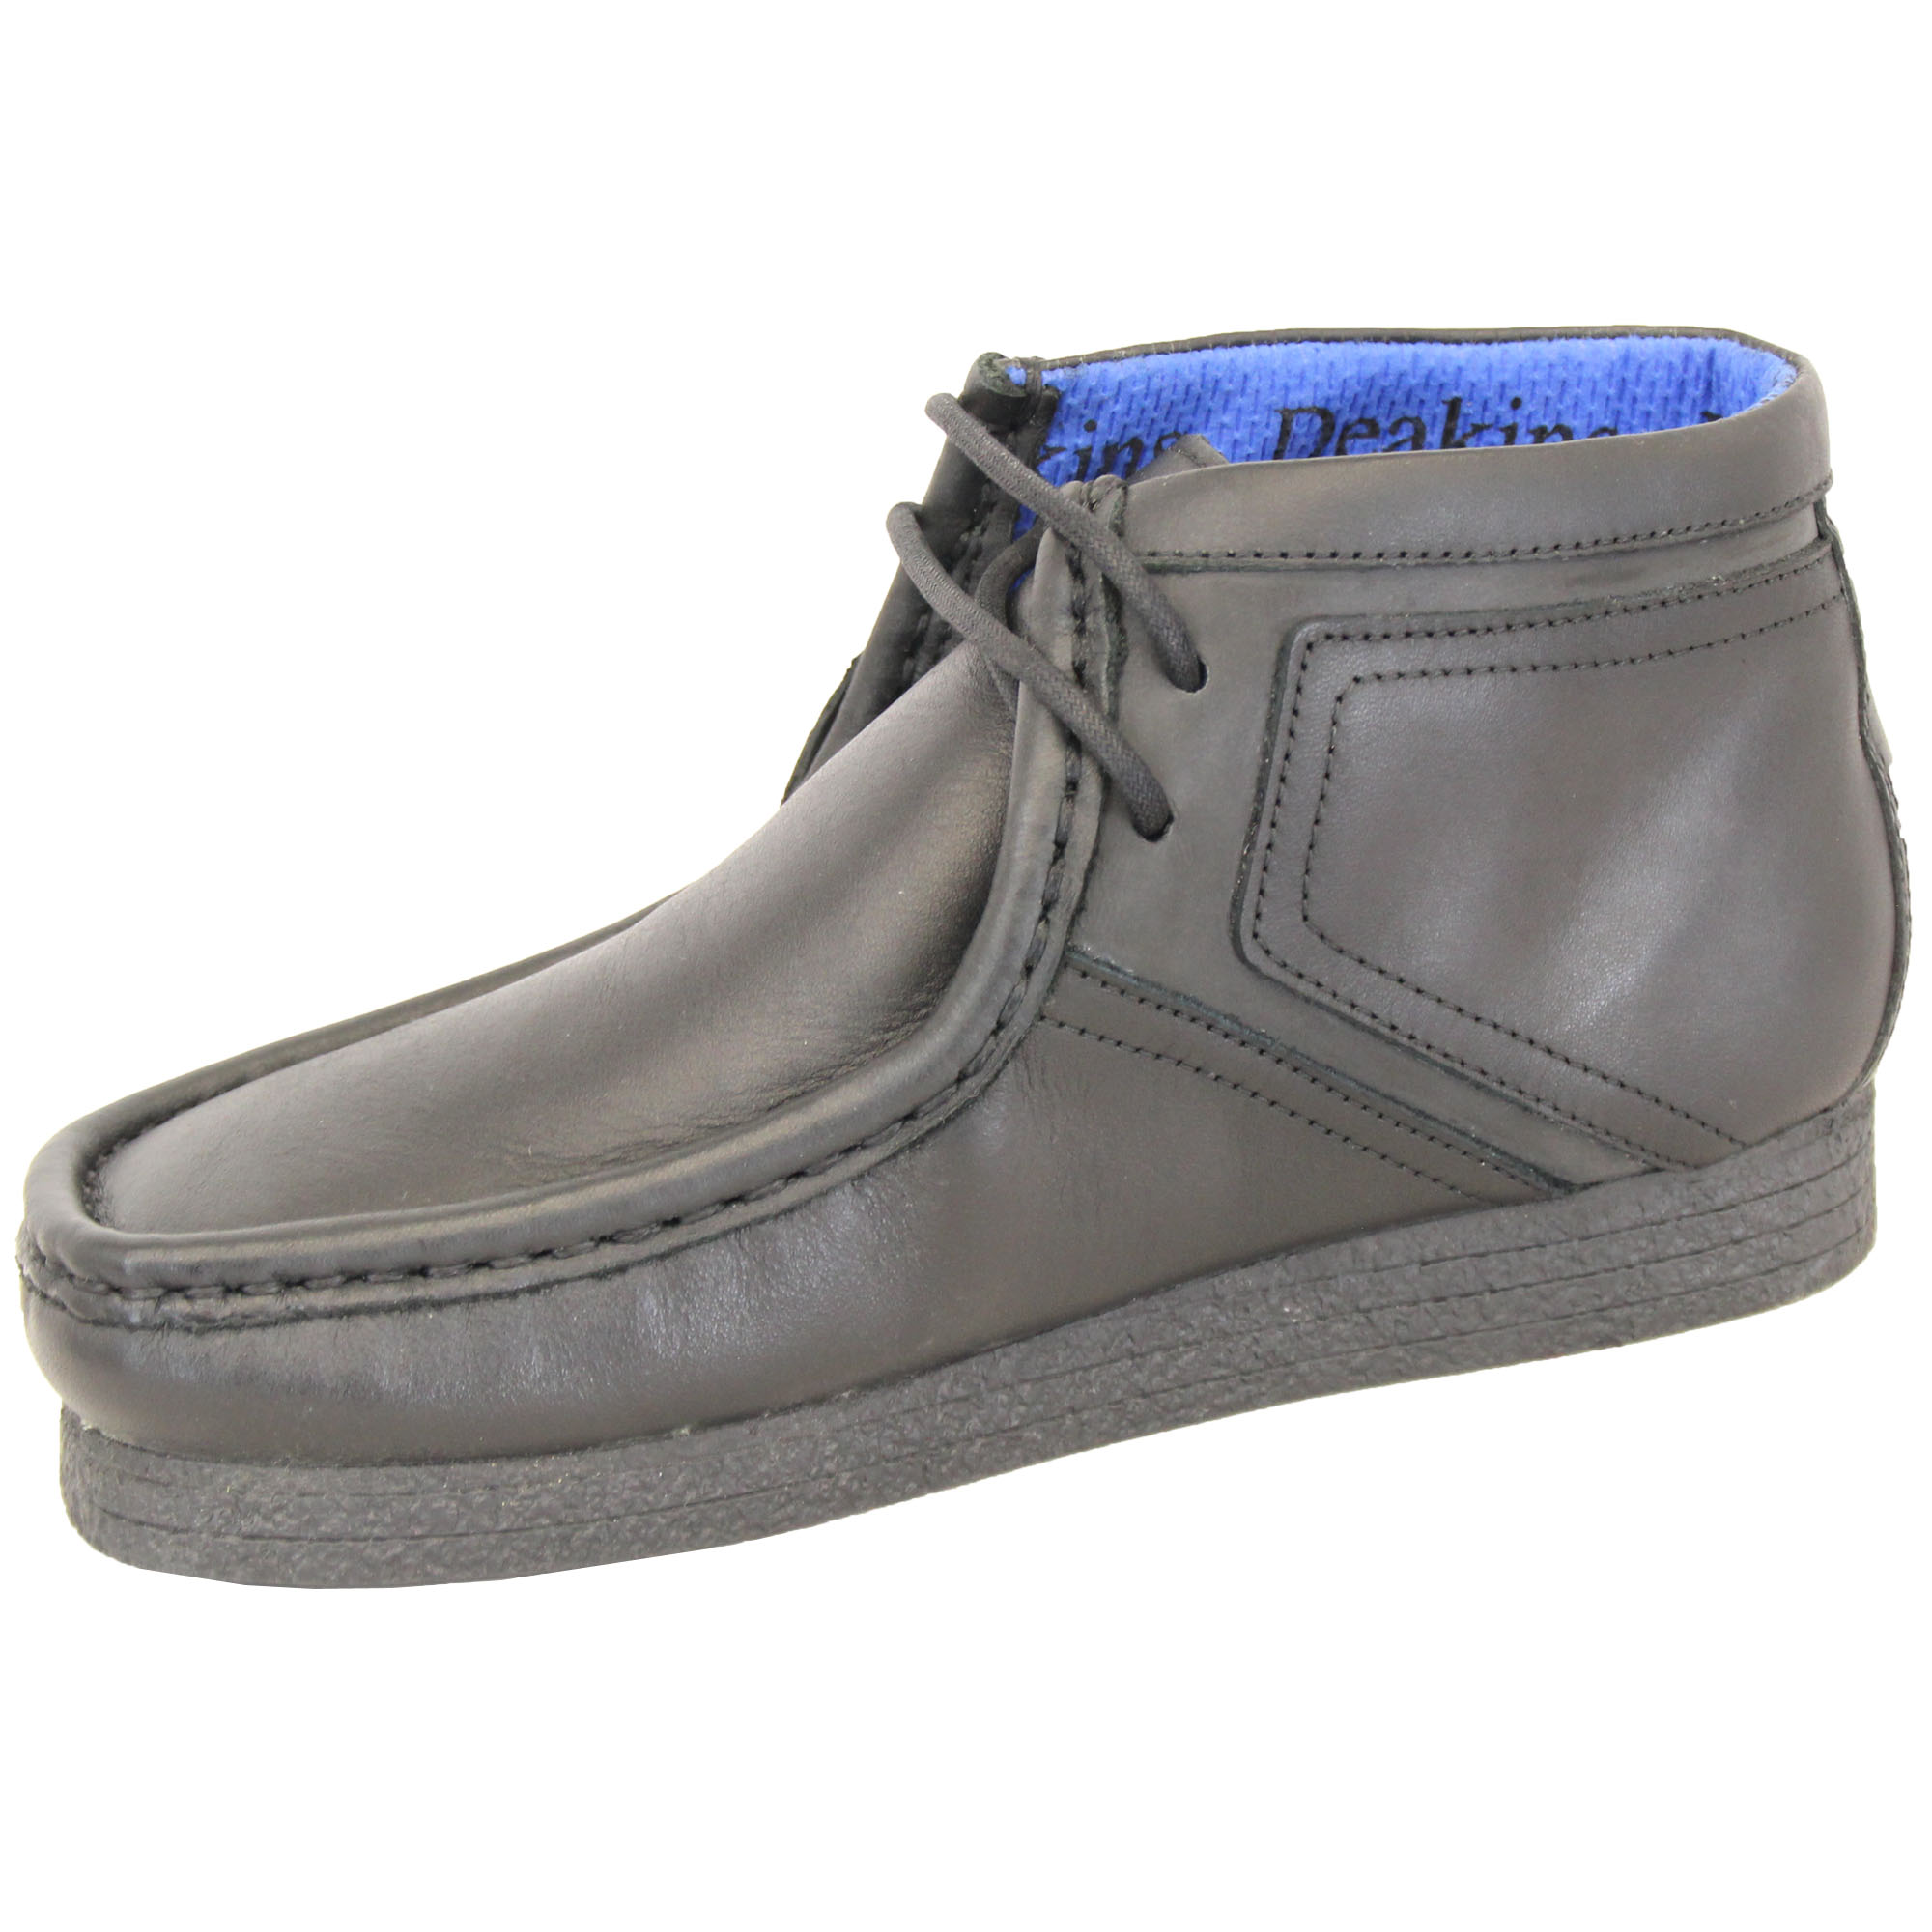 Deakins School Shoes